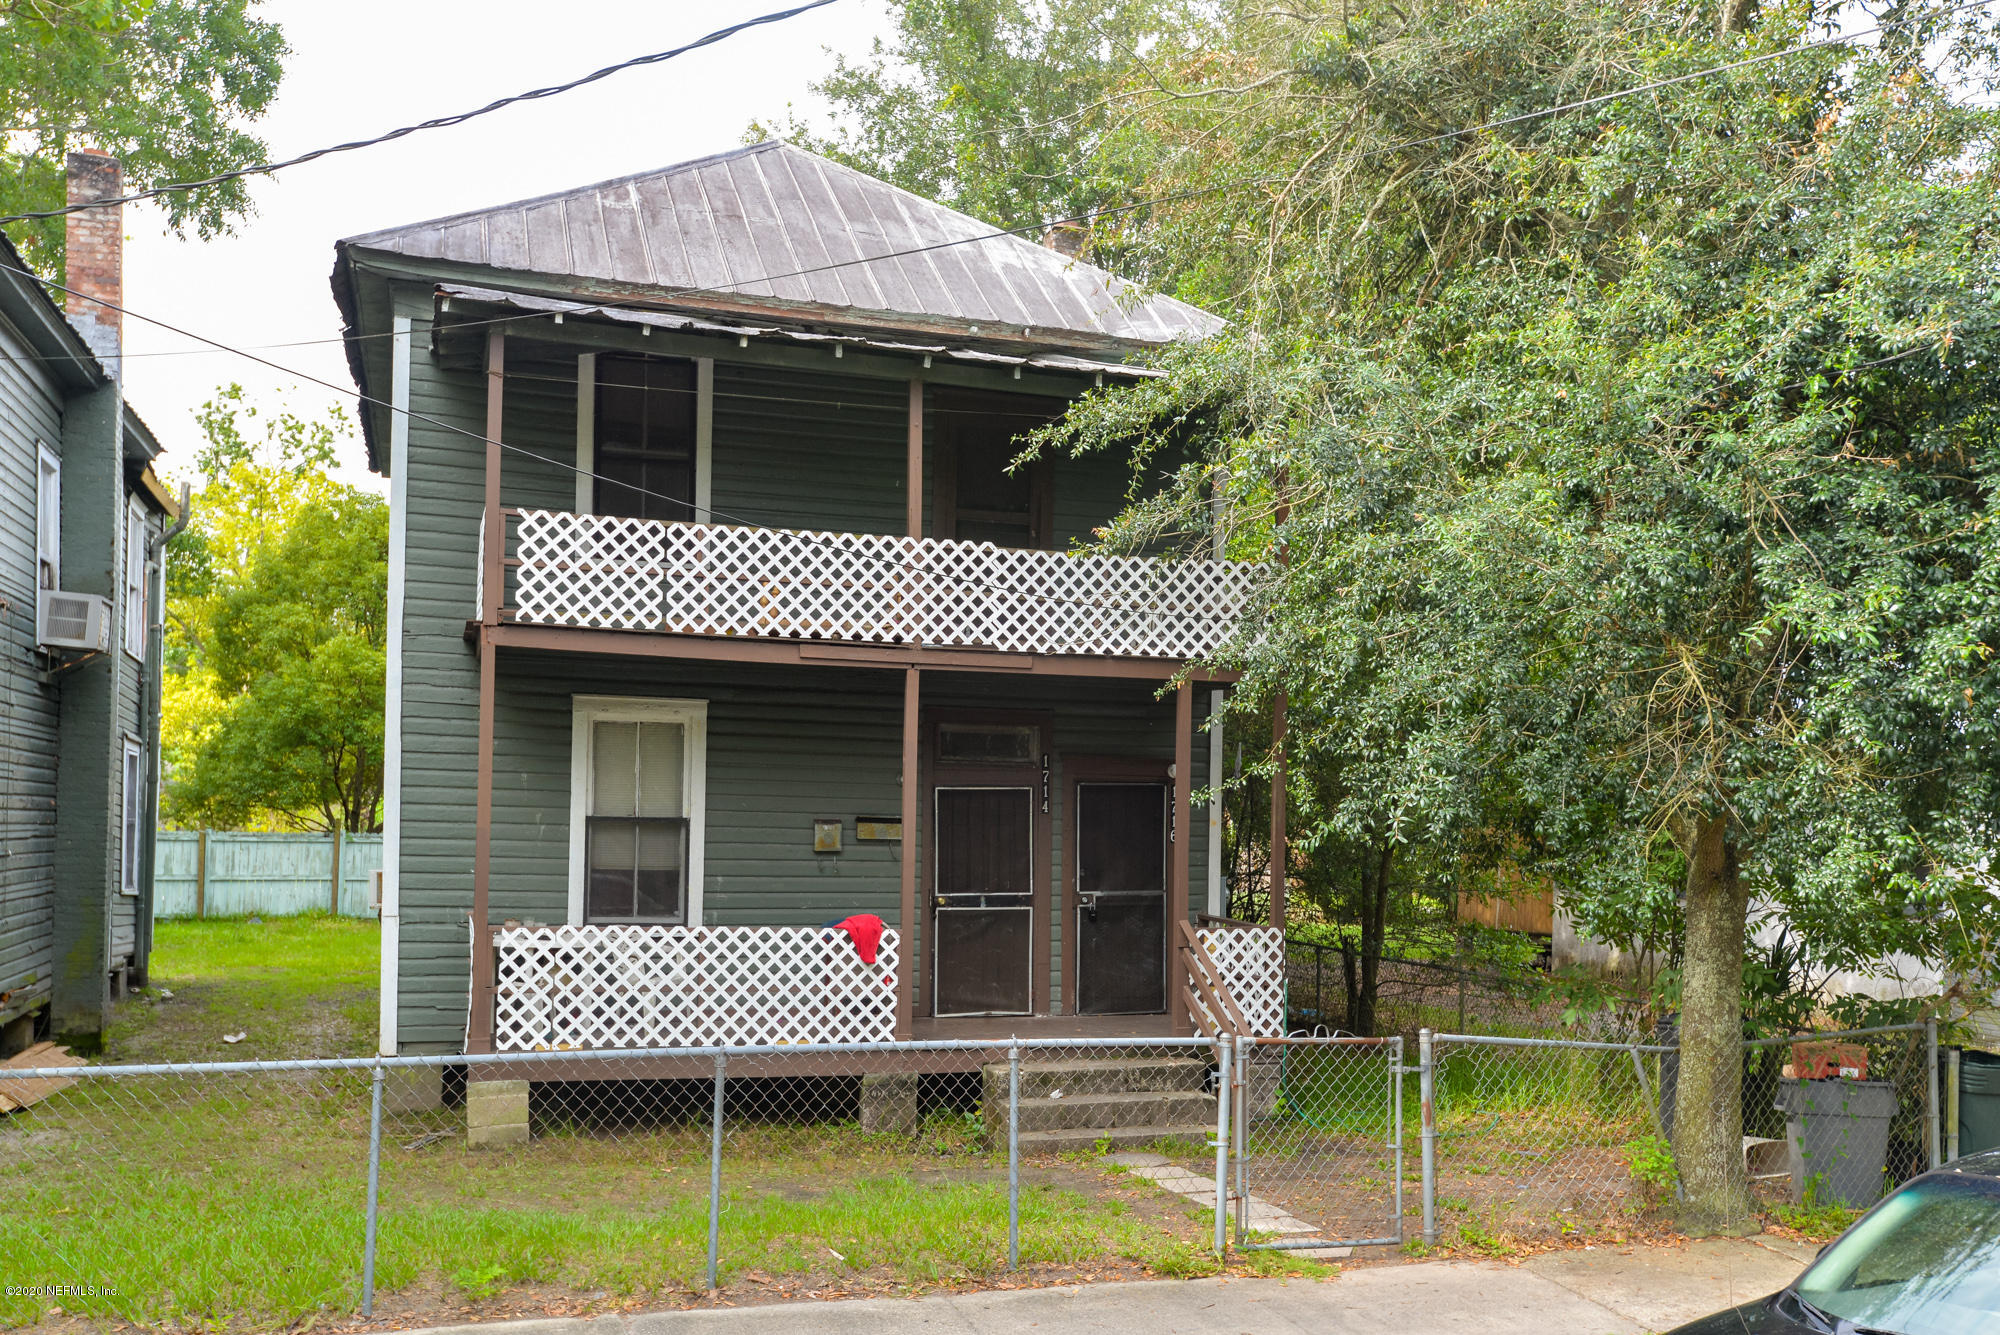 1714 11TH, JACKSONVILLE, FLORIDA 32209, 4 Bedrooms Bedrooms, ,2 BathroomsBathrooms,Investment / MultiFamily,For sale,11TH,1057523